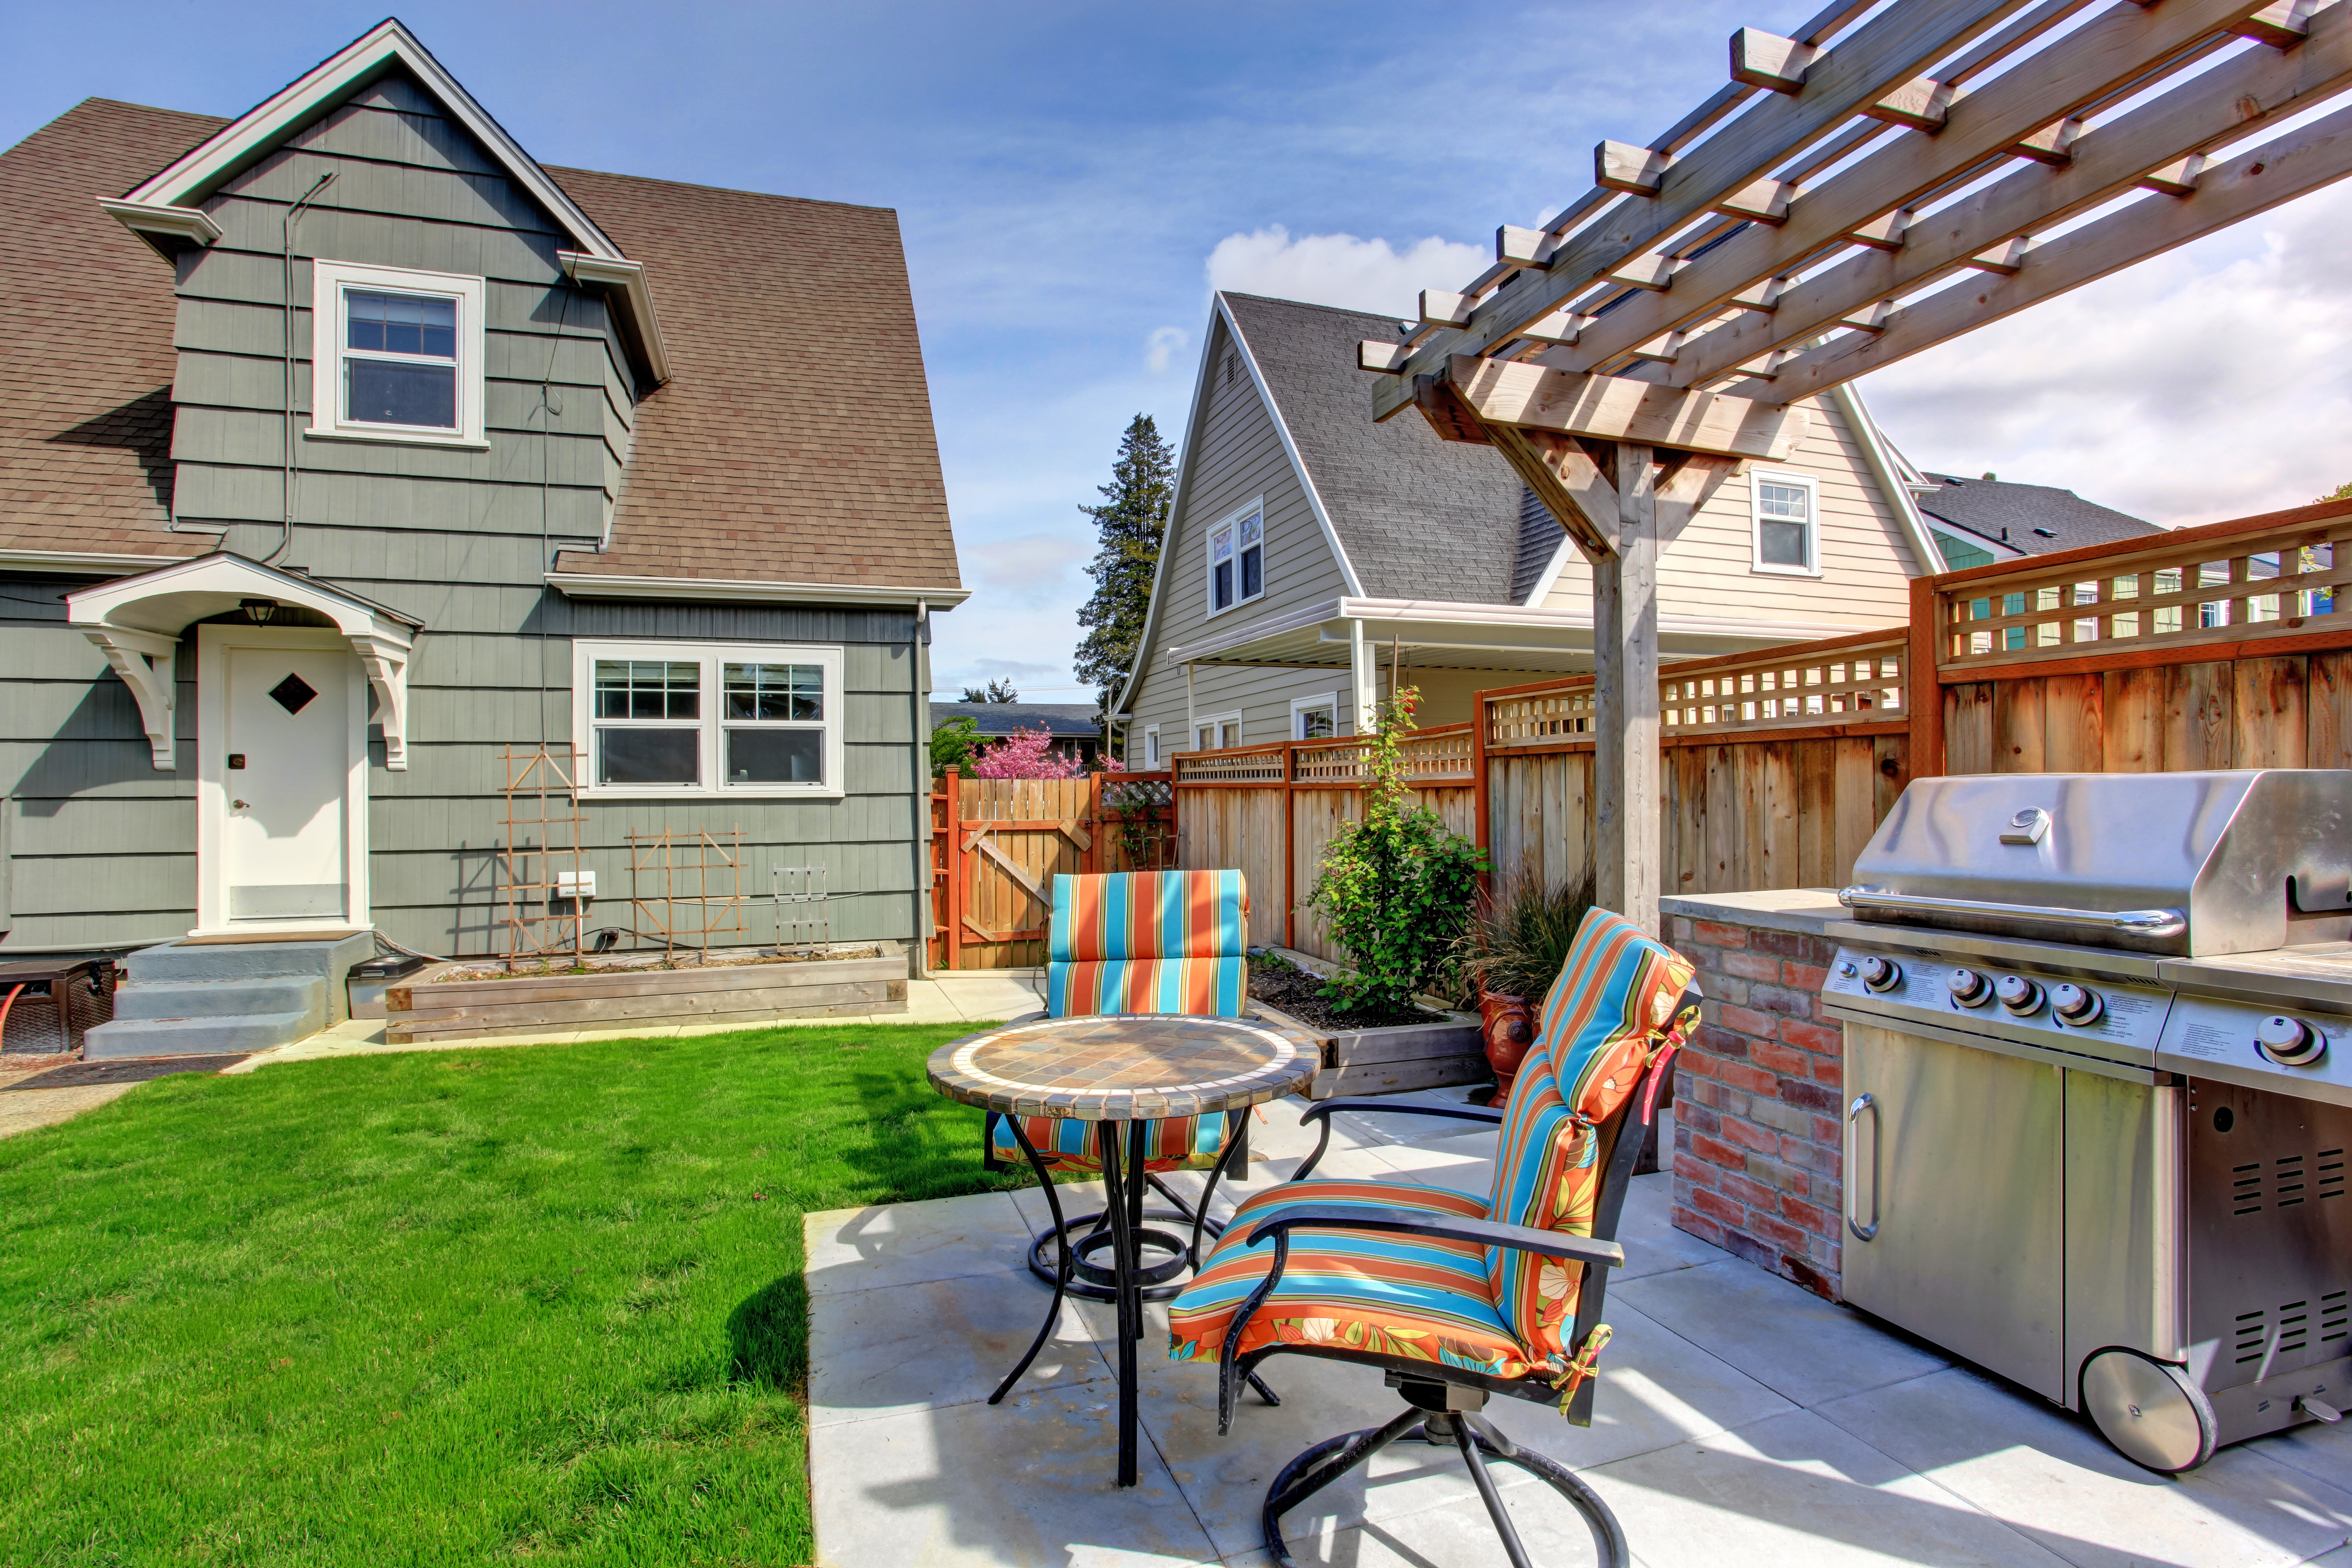 Jacksonville Deck Company Decks And Outdoor Kitchens In Jacksonville